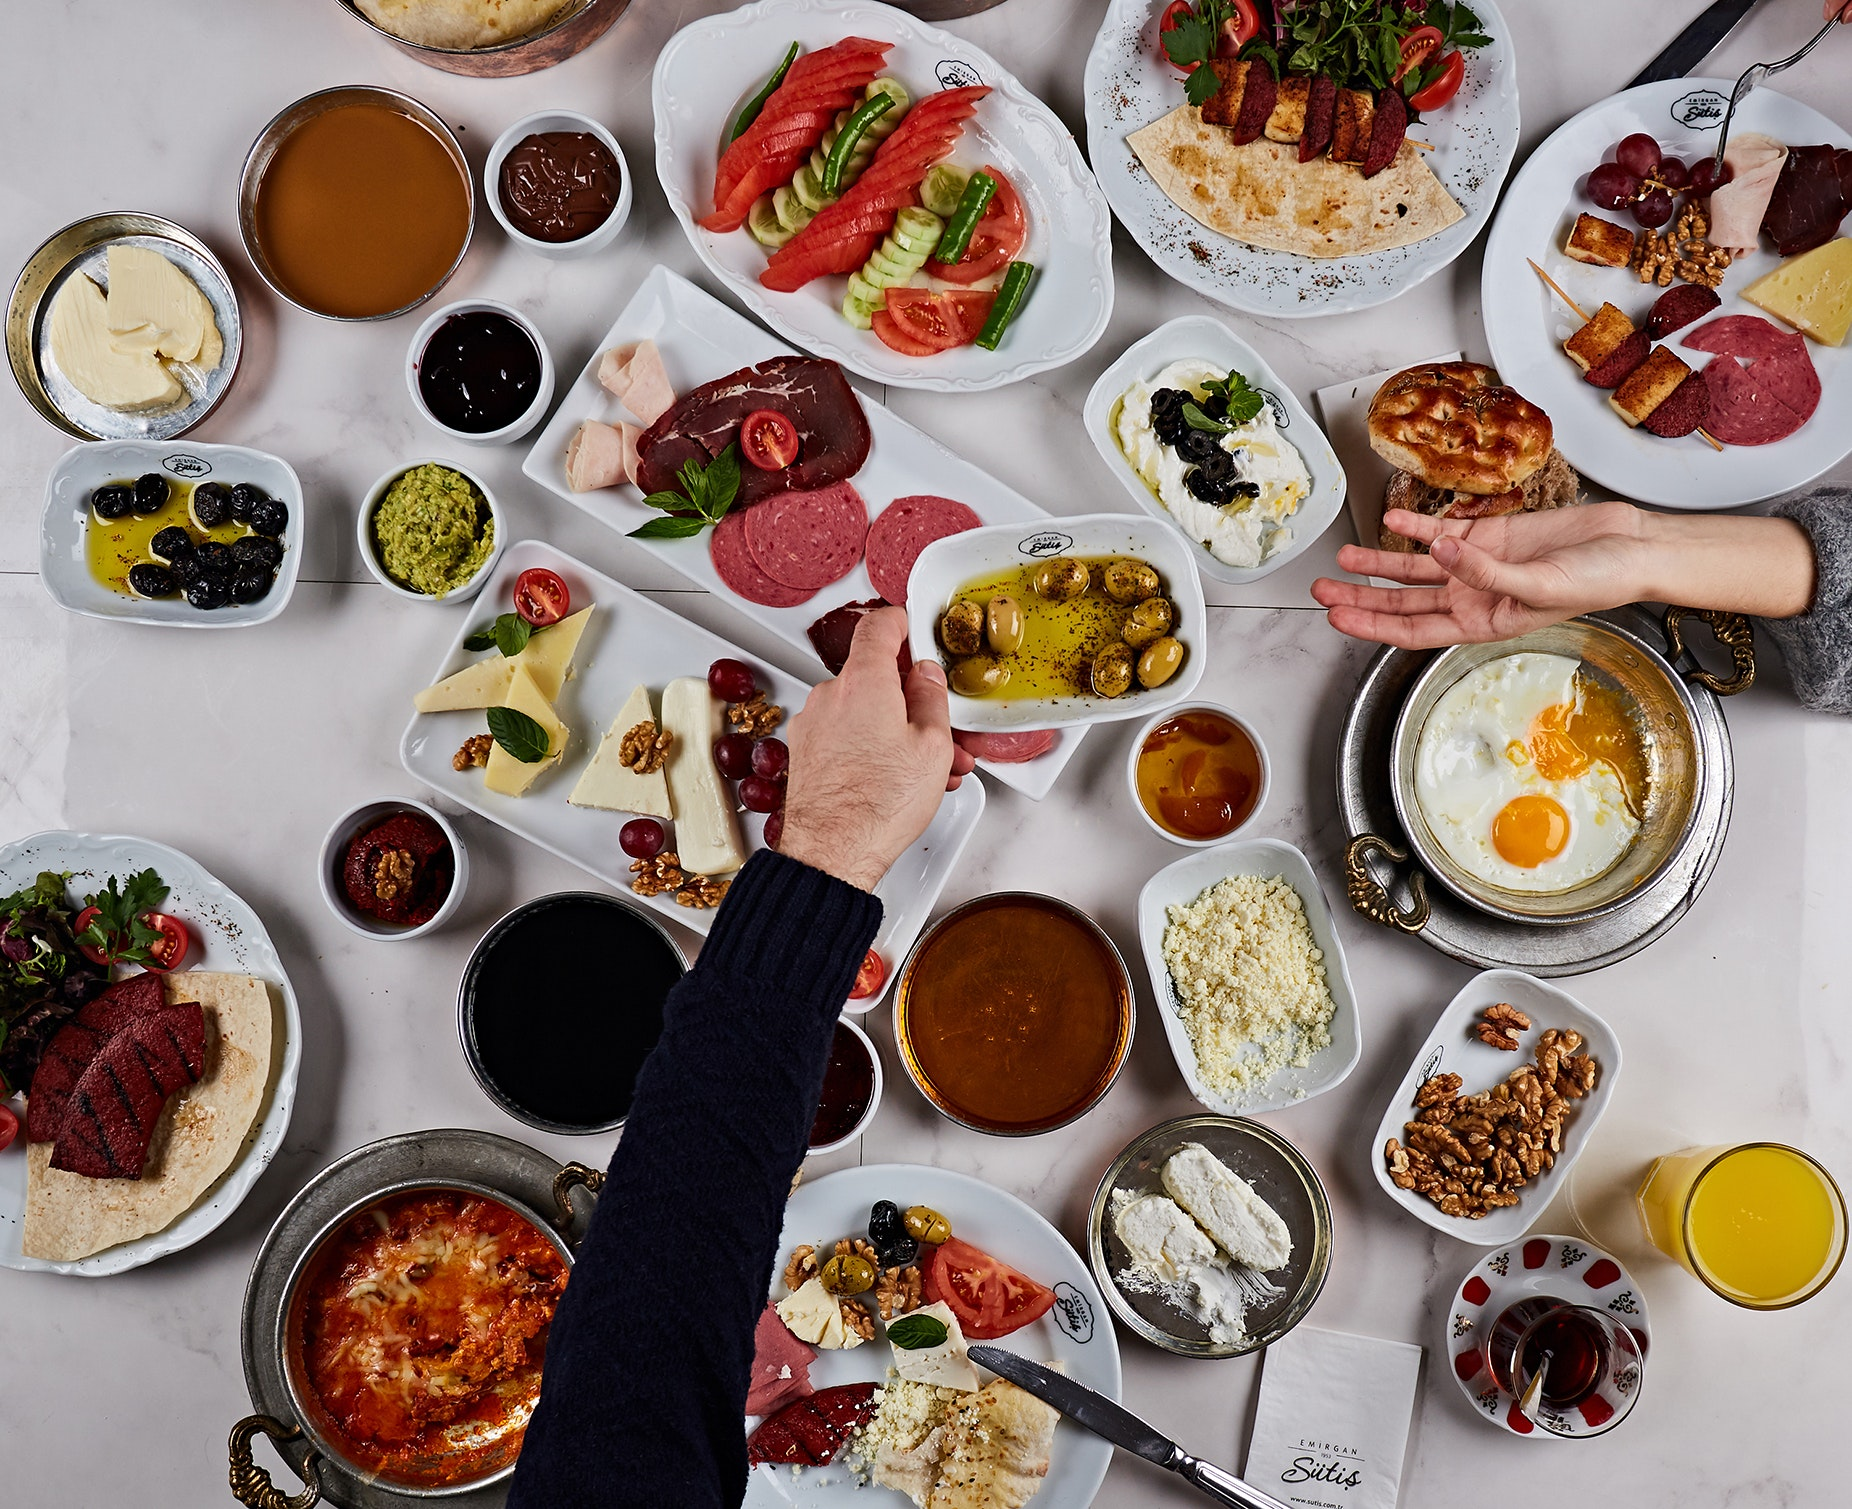 A traditional Turkish breakfast spread